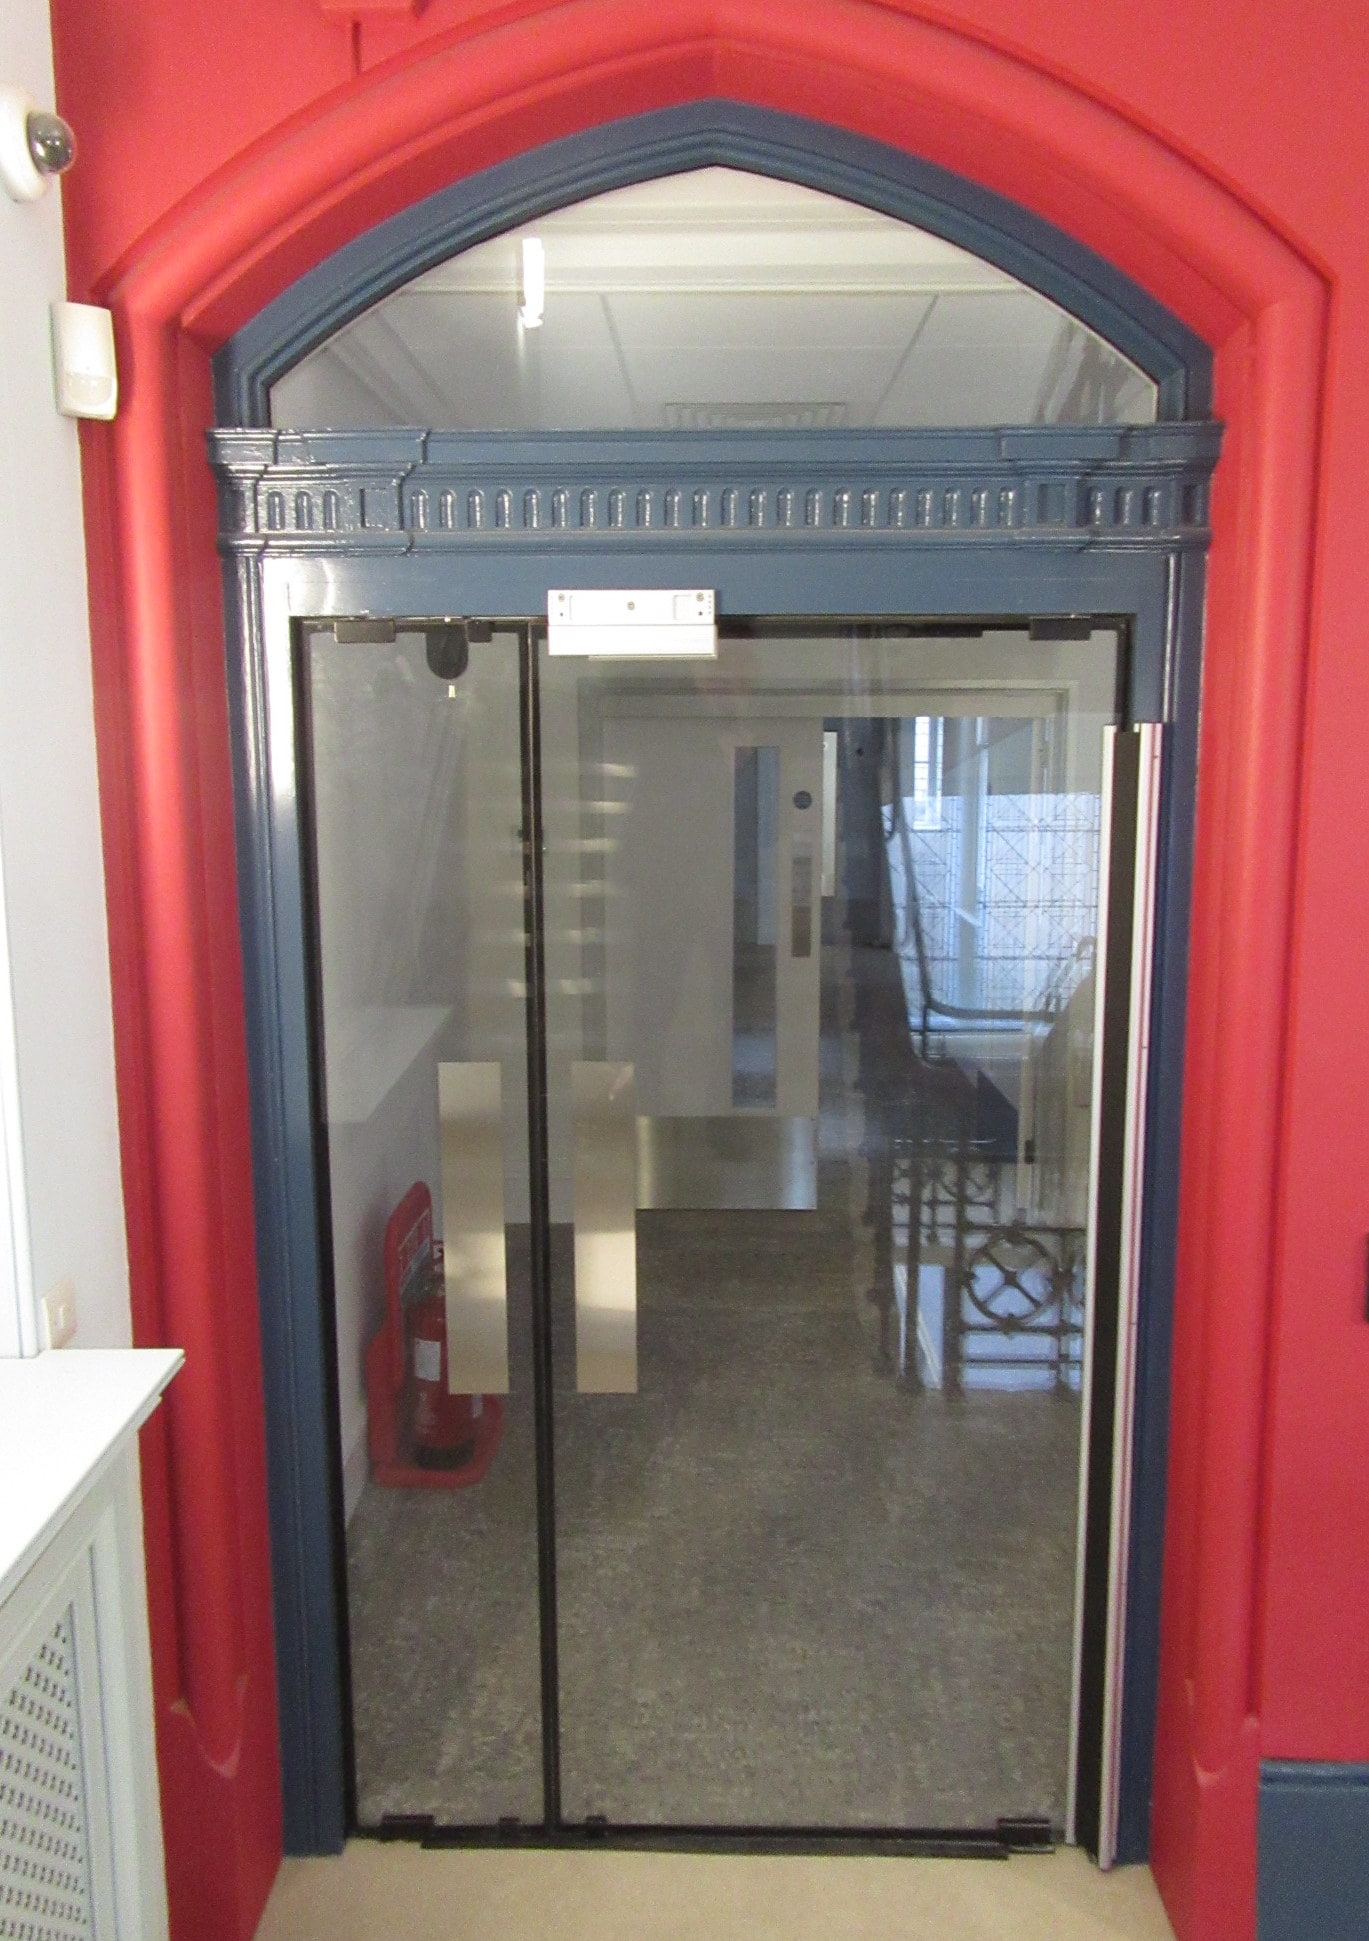 hastings-library-automatic-fire-rated-glass-door-with-arched-glass-over-panels